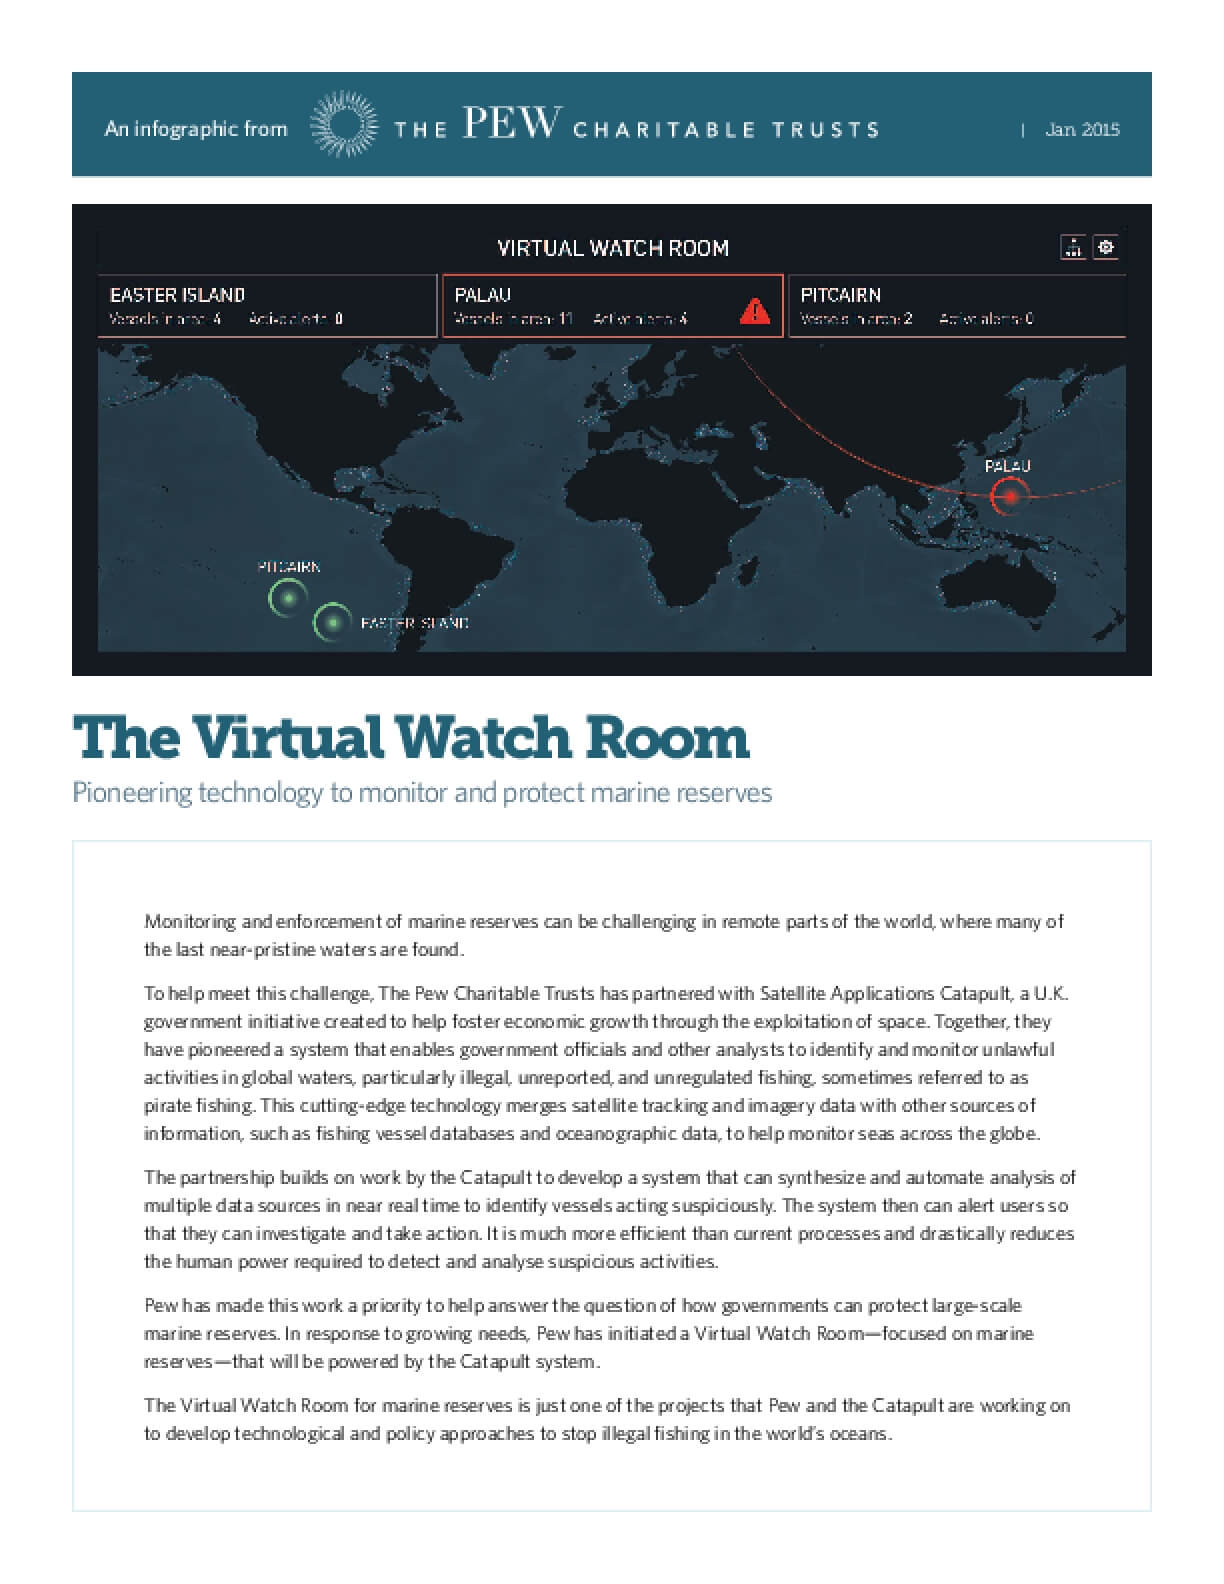 The Virtual Watch Room